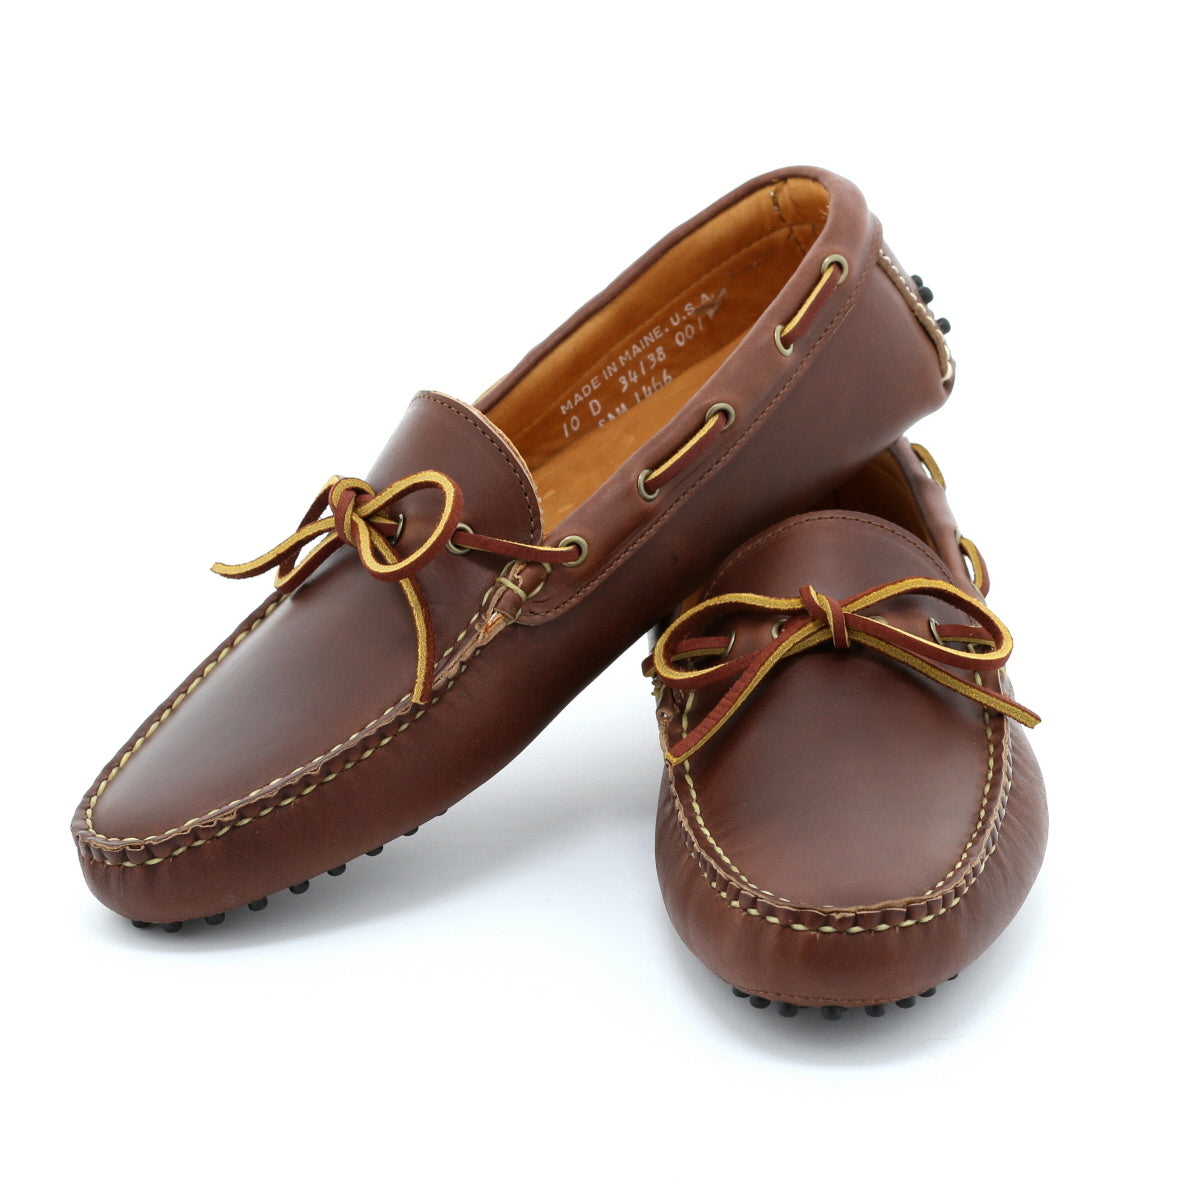 Westbrook Driving-moc - Carolina Brown Chromexcel